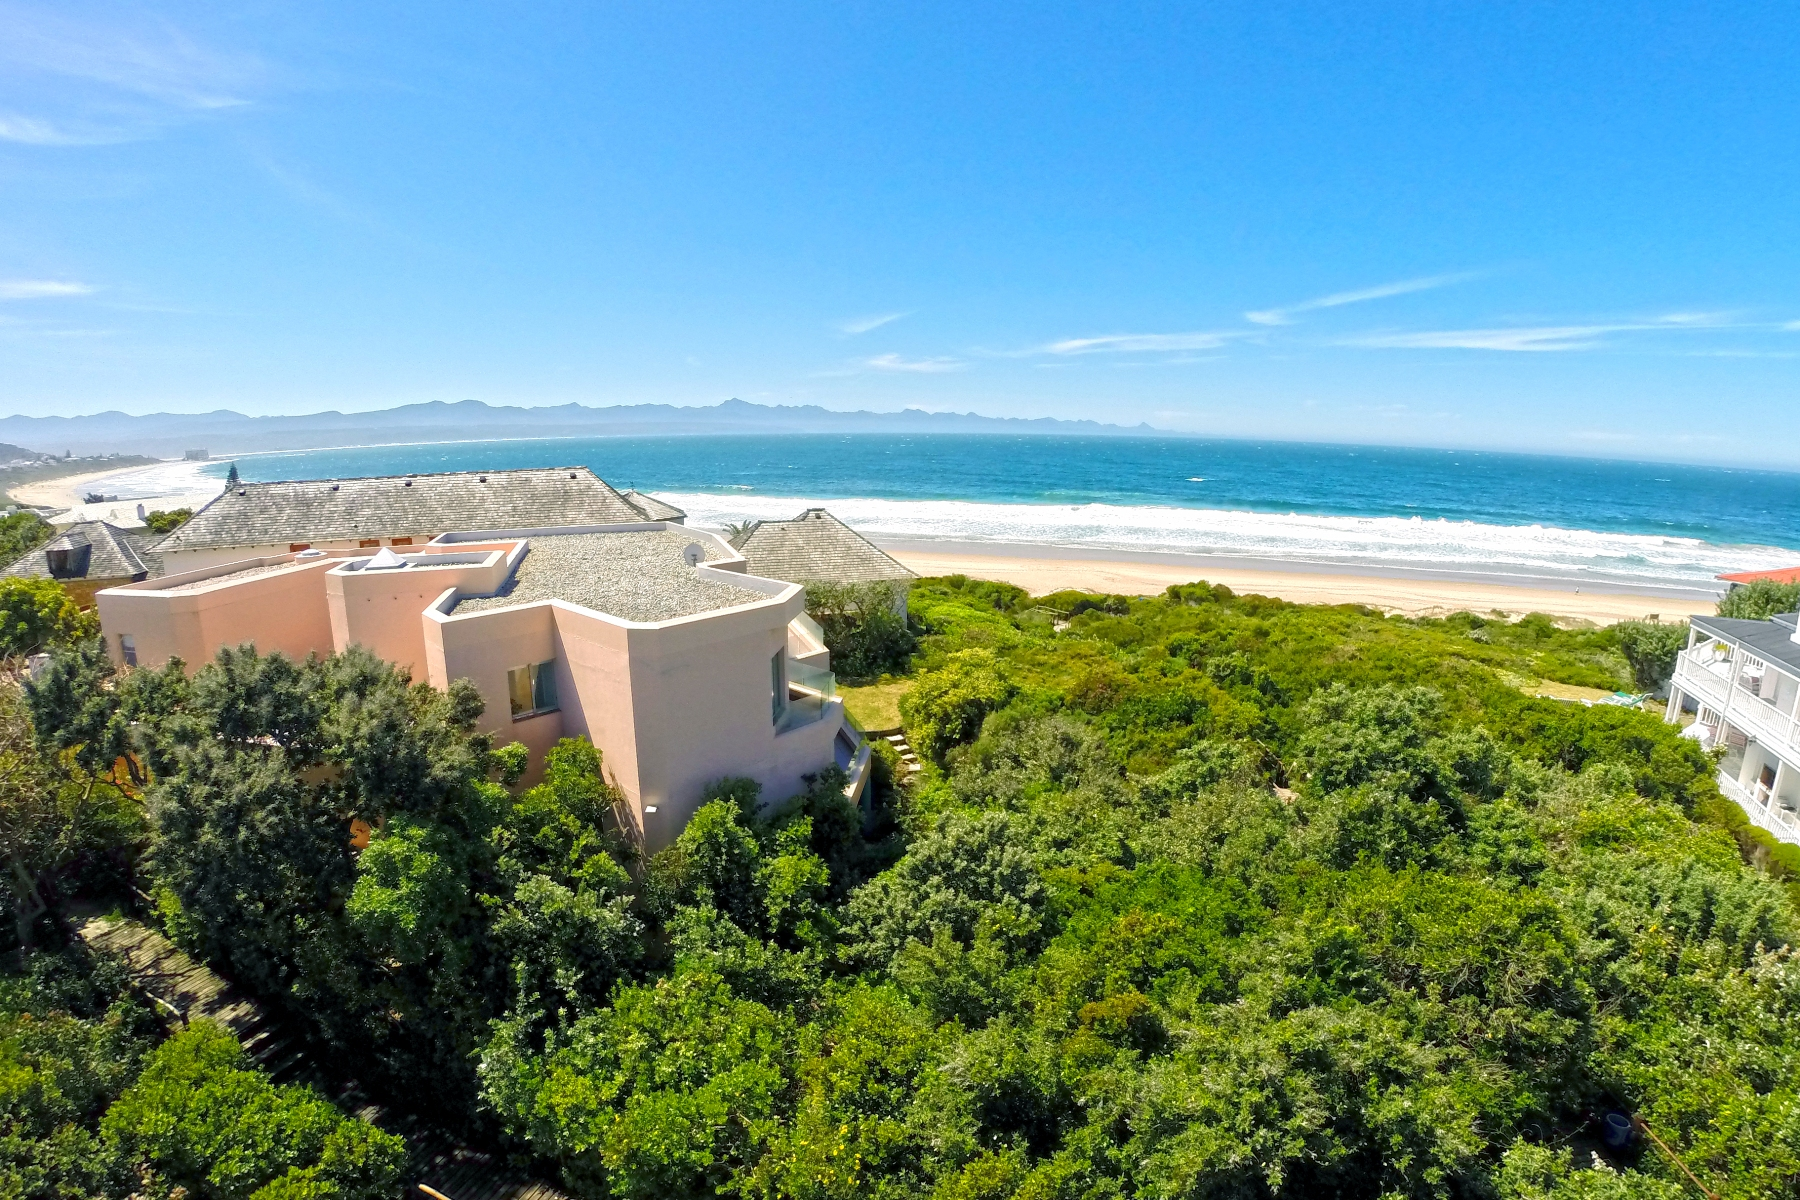 Single Family Home for Sale at Beach Living Plettenberg Bay, Western Cape, 6600 South Africa